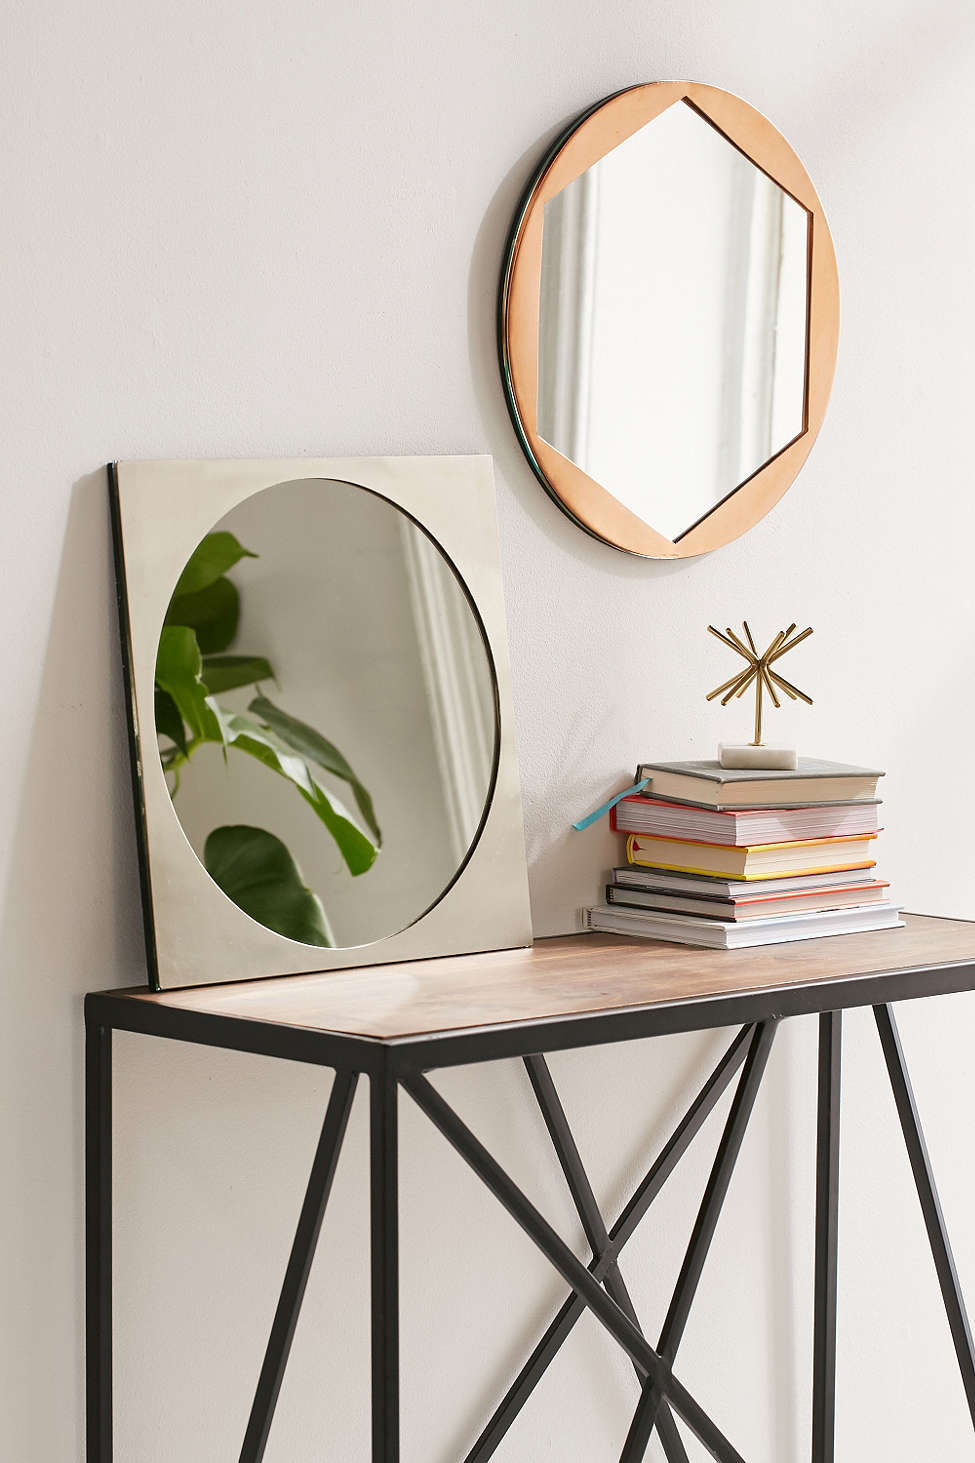 Metal geo mirrors from Urban Outfitters